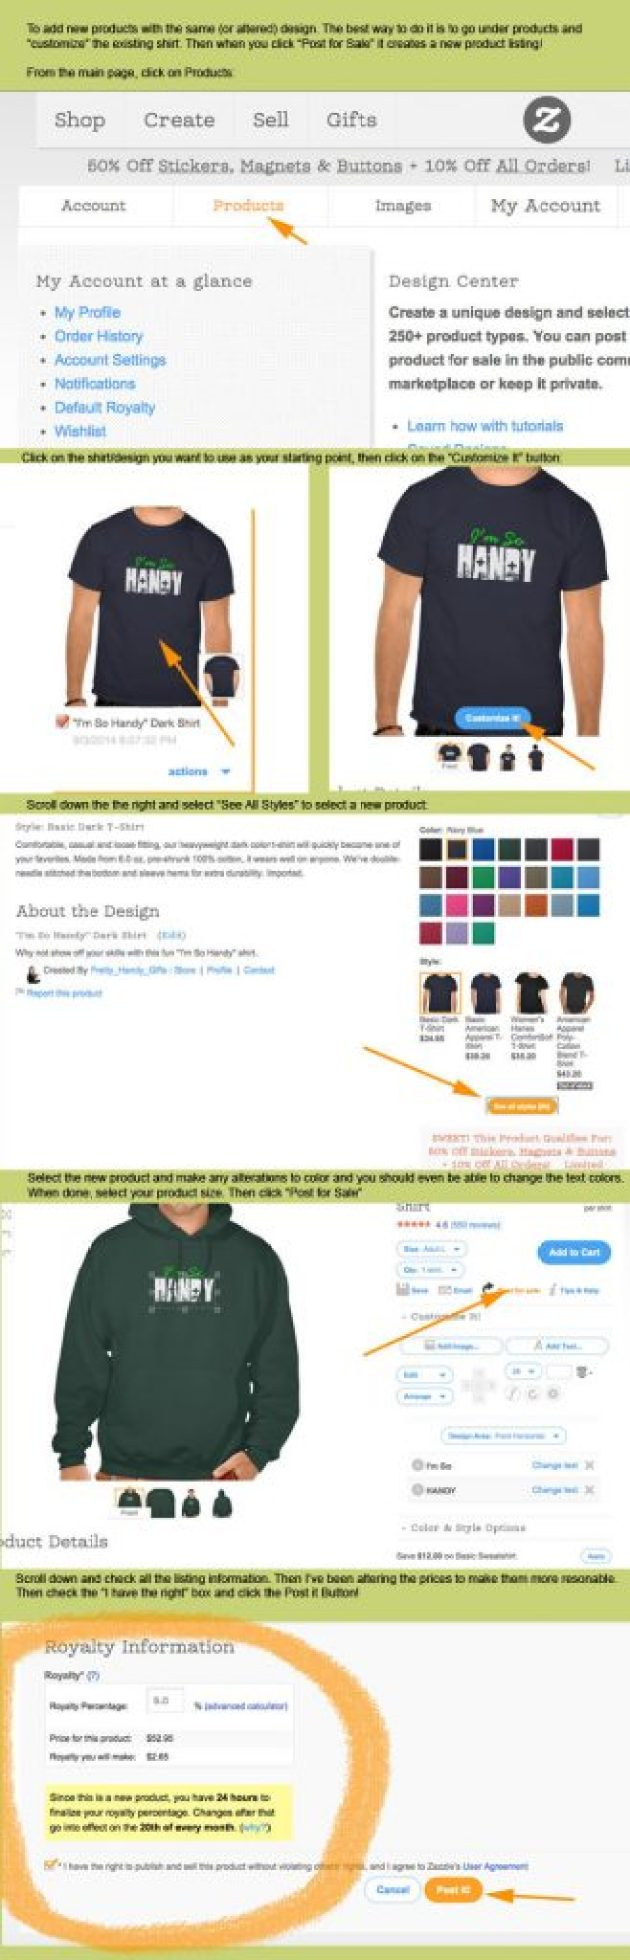 How to Create Your Own Zazzle Shirts | Pretty Handy Girl